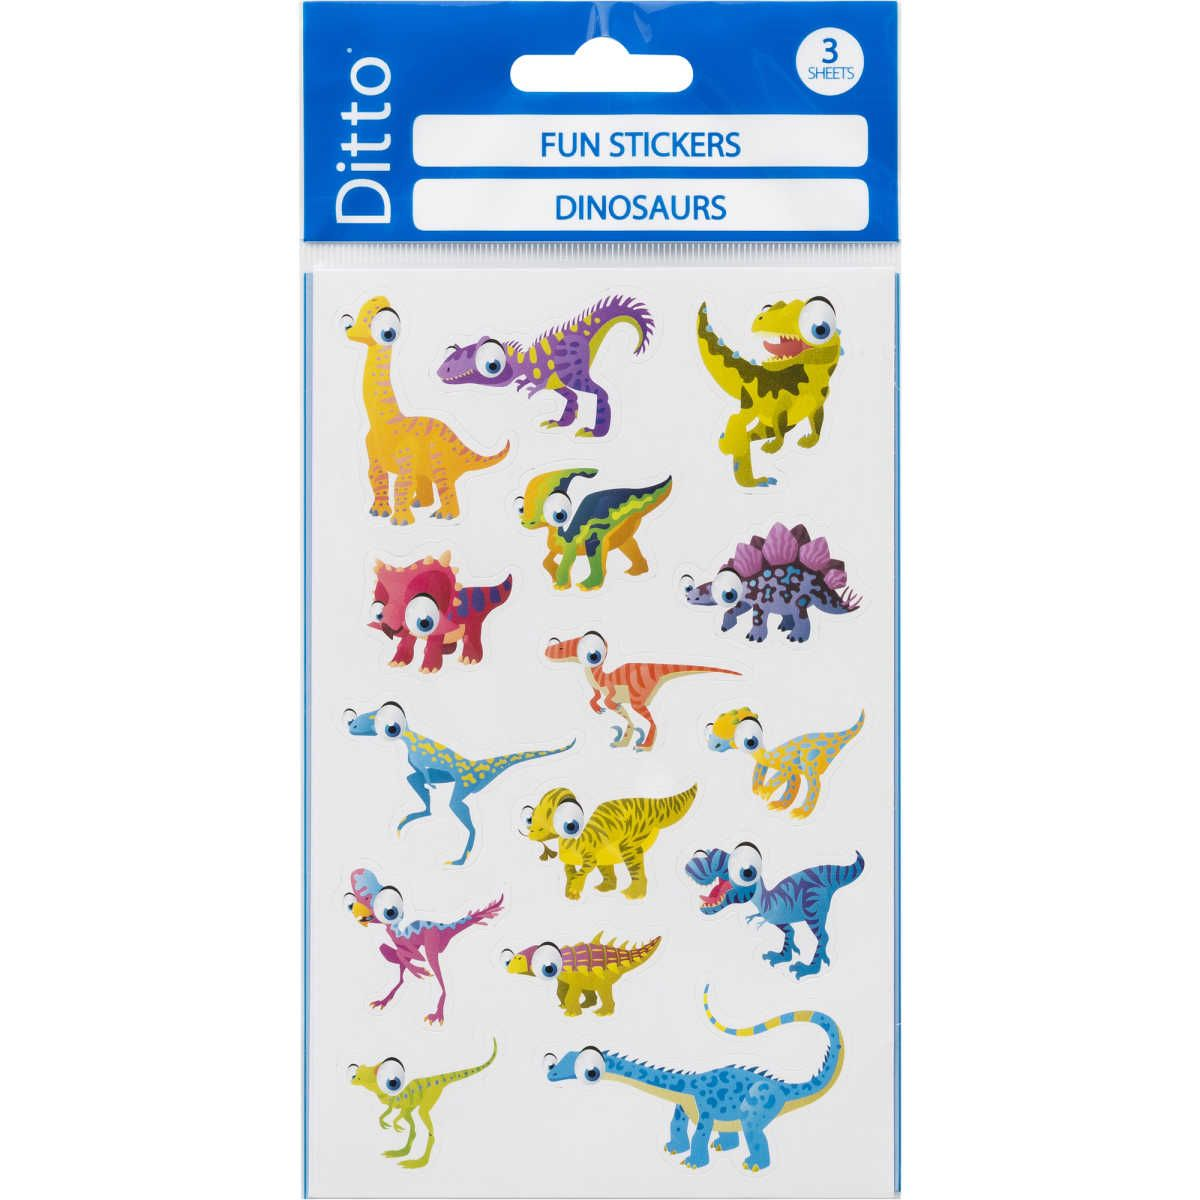 Big W Stickers Ditto Dinosaurs Fun Stickers H Is 3 The Good Dinosaur